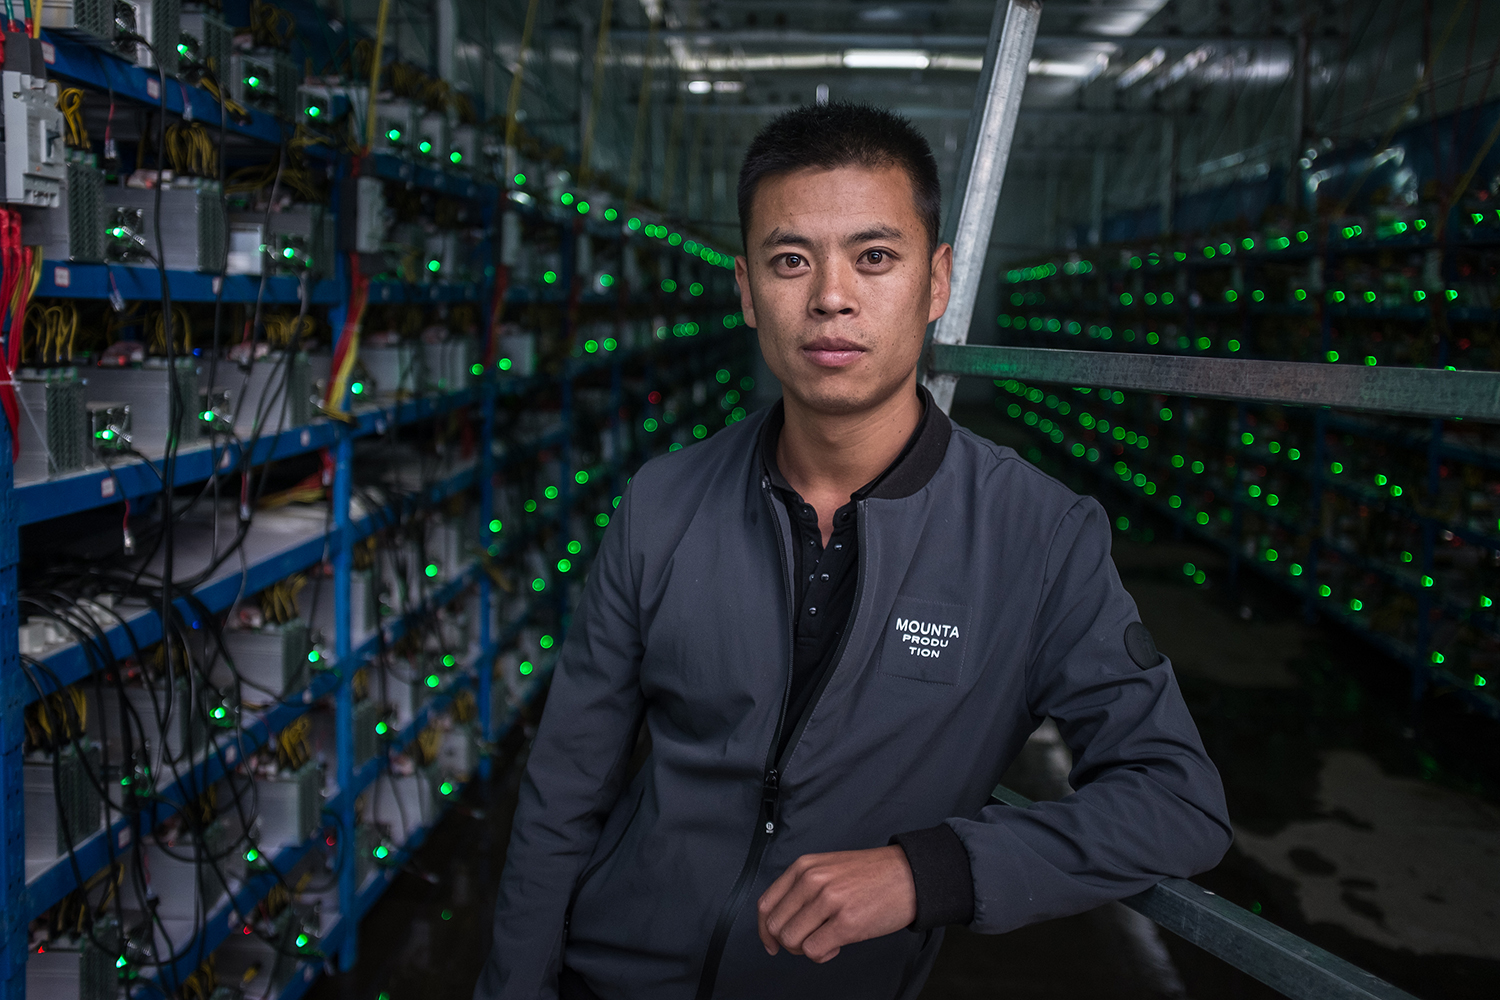 A 29-year-old Tibetan named Kun poses in between aisles of mining machines, September 26, 2016. Kun is the mine's manager as well as one of its investors. He learned about Bitcoin through a friend and started investing in 2015.